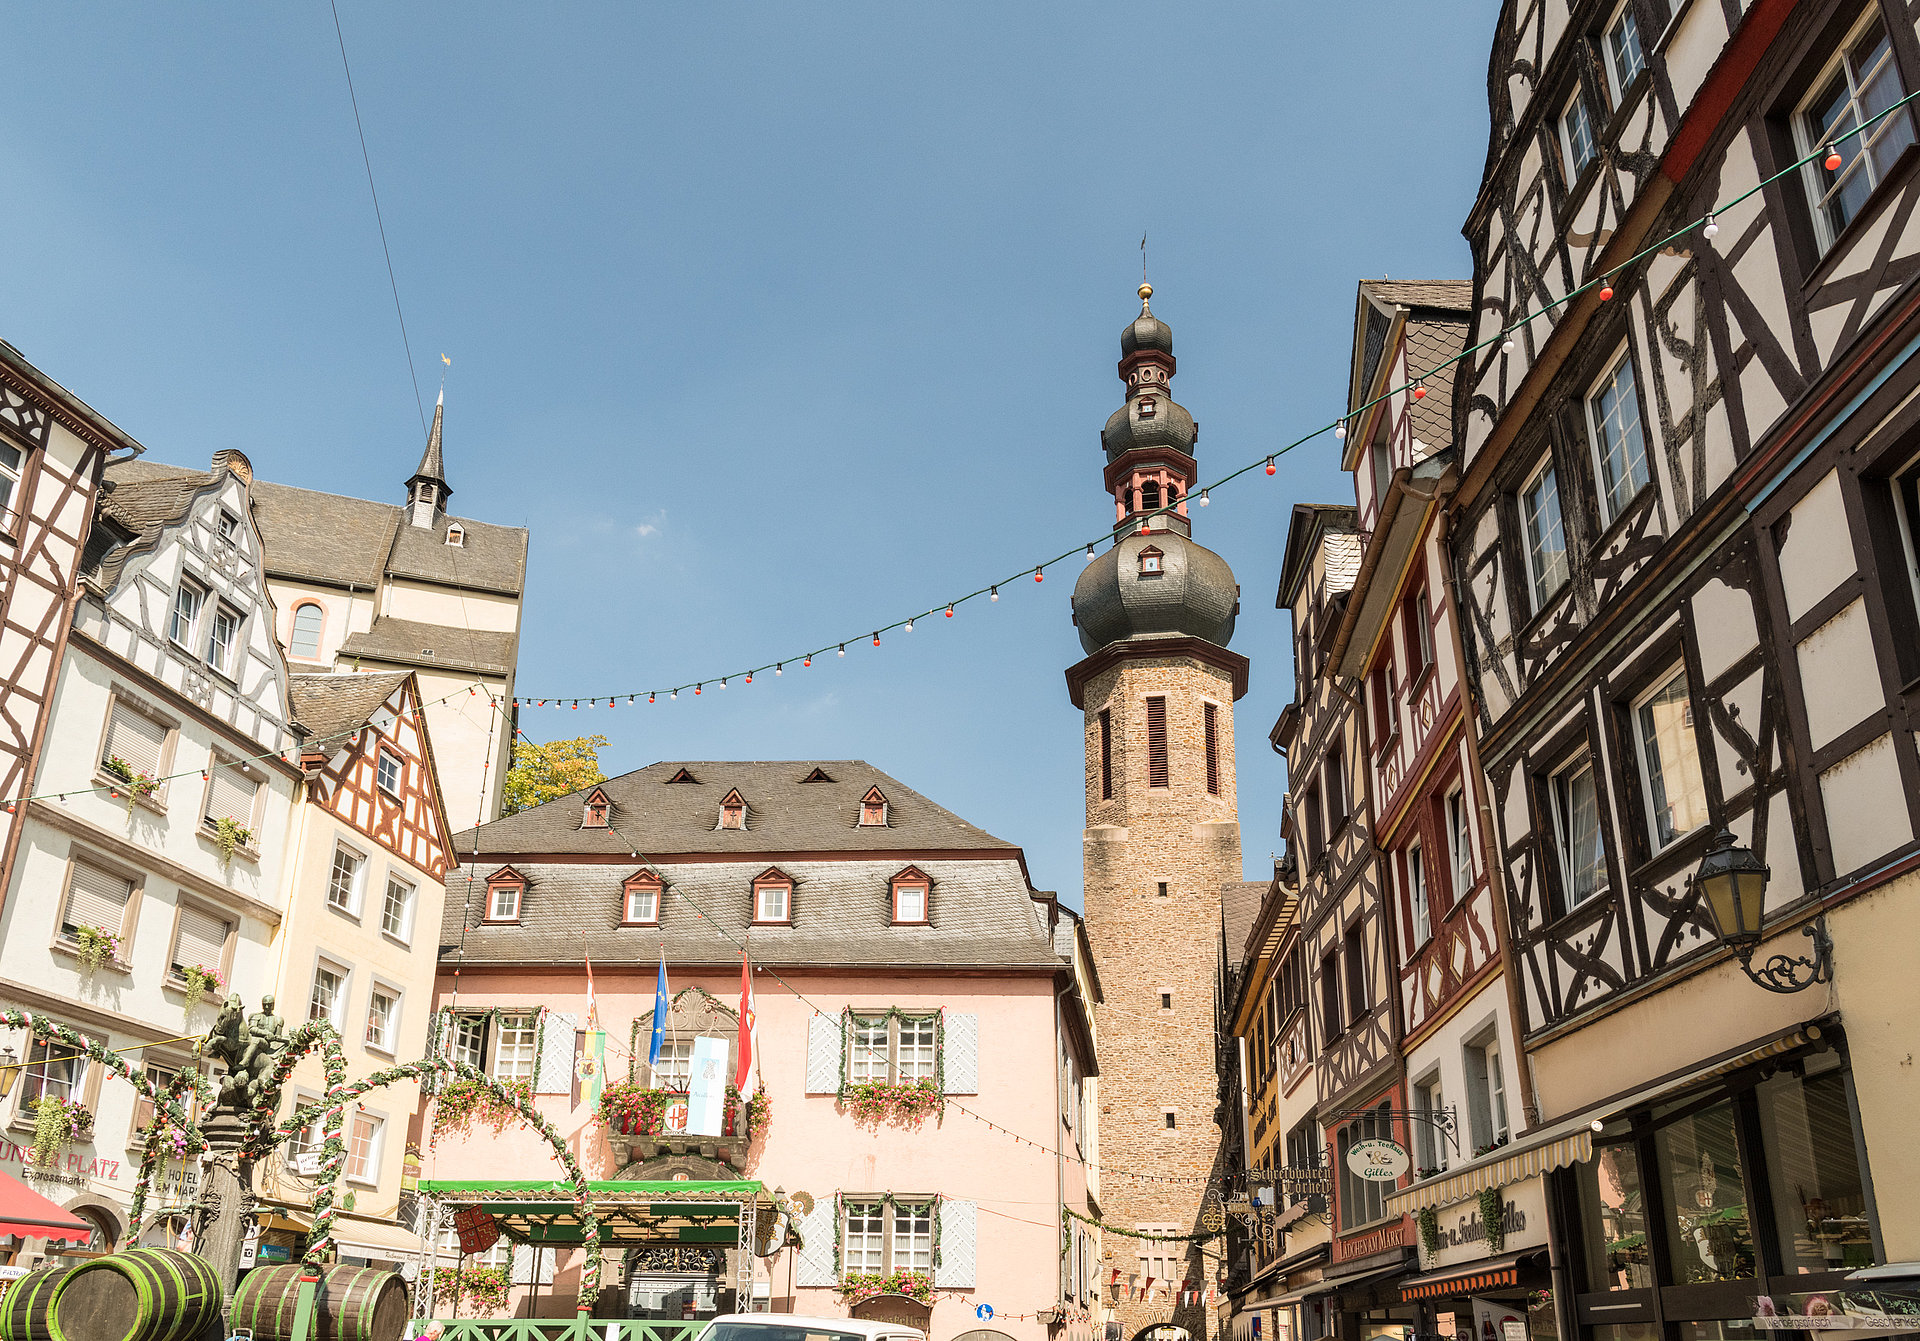 The market place in Cochem, Moselle